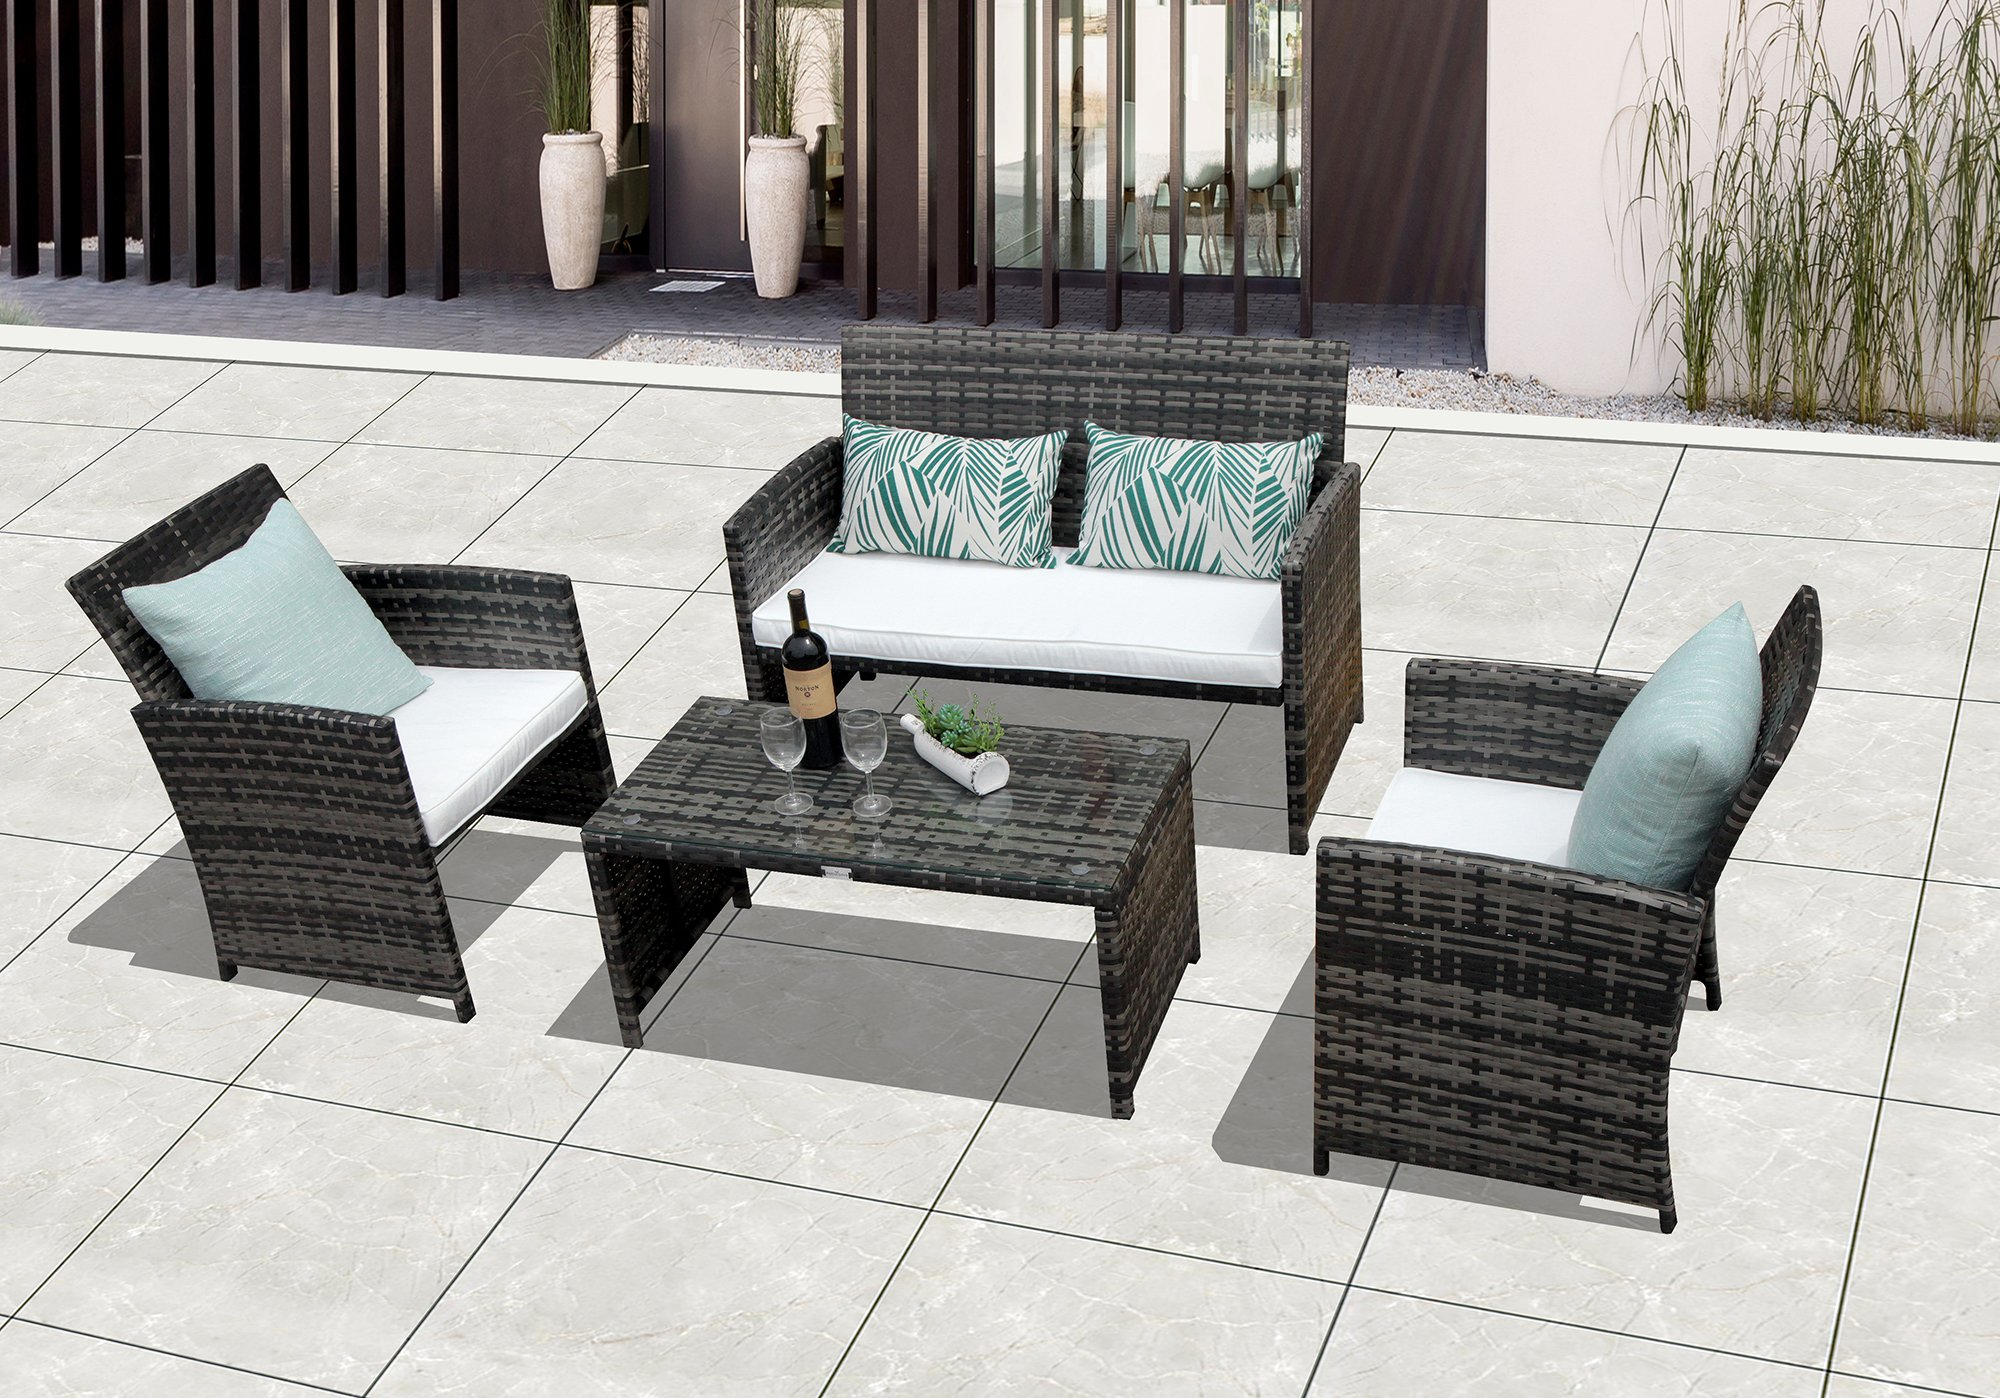 Patiorama 4 Pieces Patio Loveseats Outdoor Furniture Sets with Seat Cushions, Outdoor PE Wicker, Gradient Brown (Grey-4)